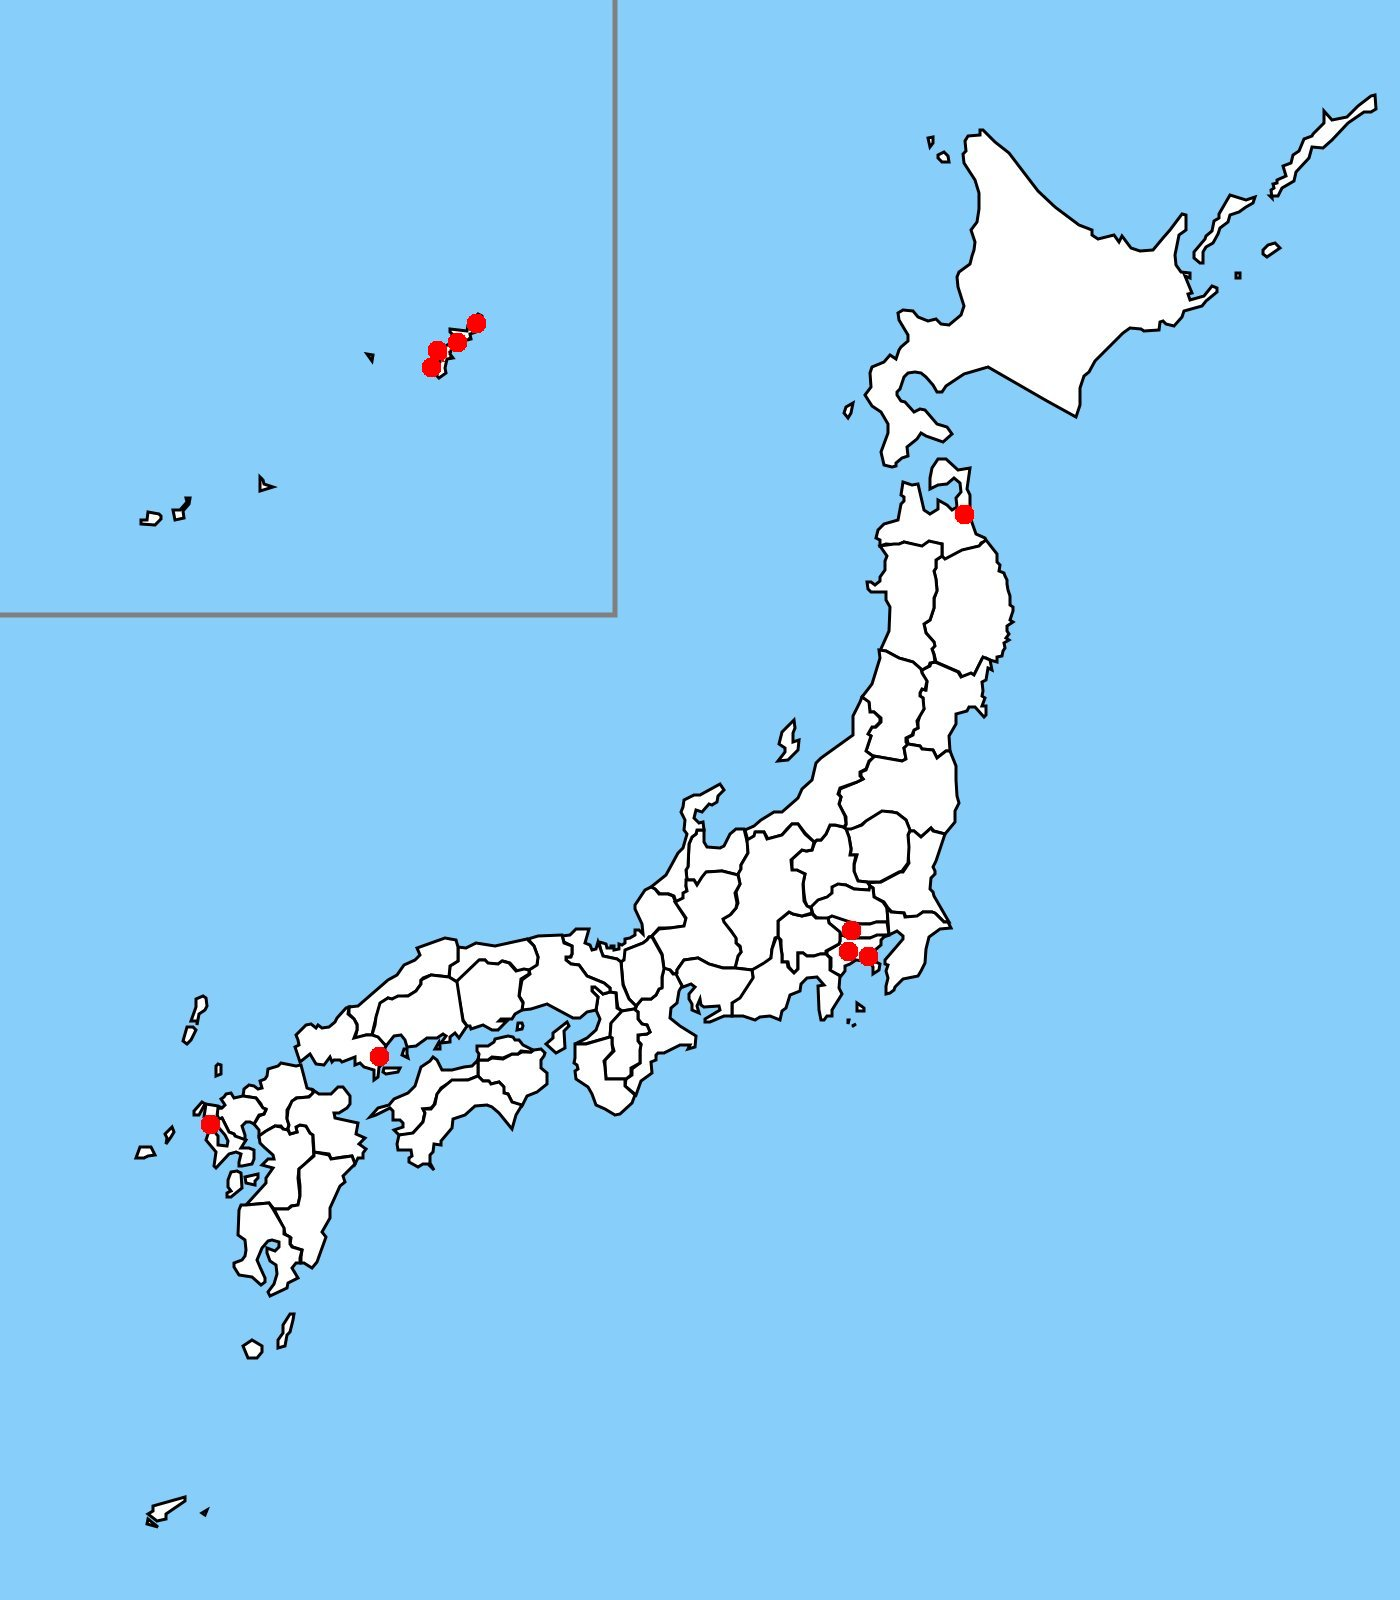 FileUS Military Bases In Japanjpg Wikimedia Commons - Us naval bases in japan map